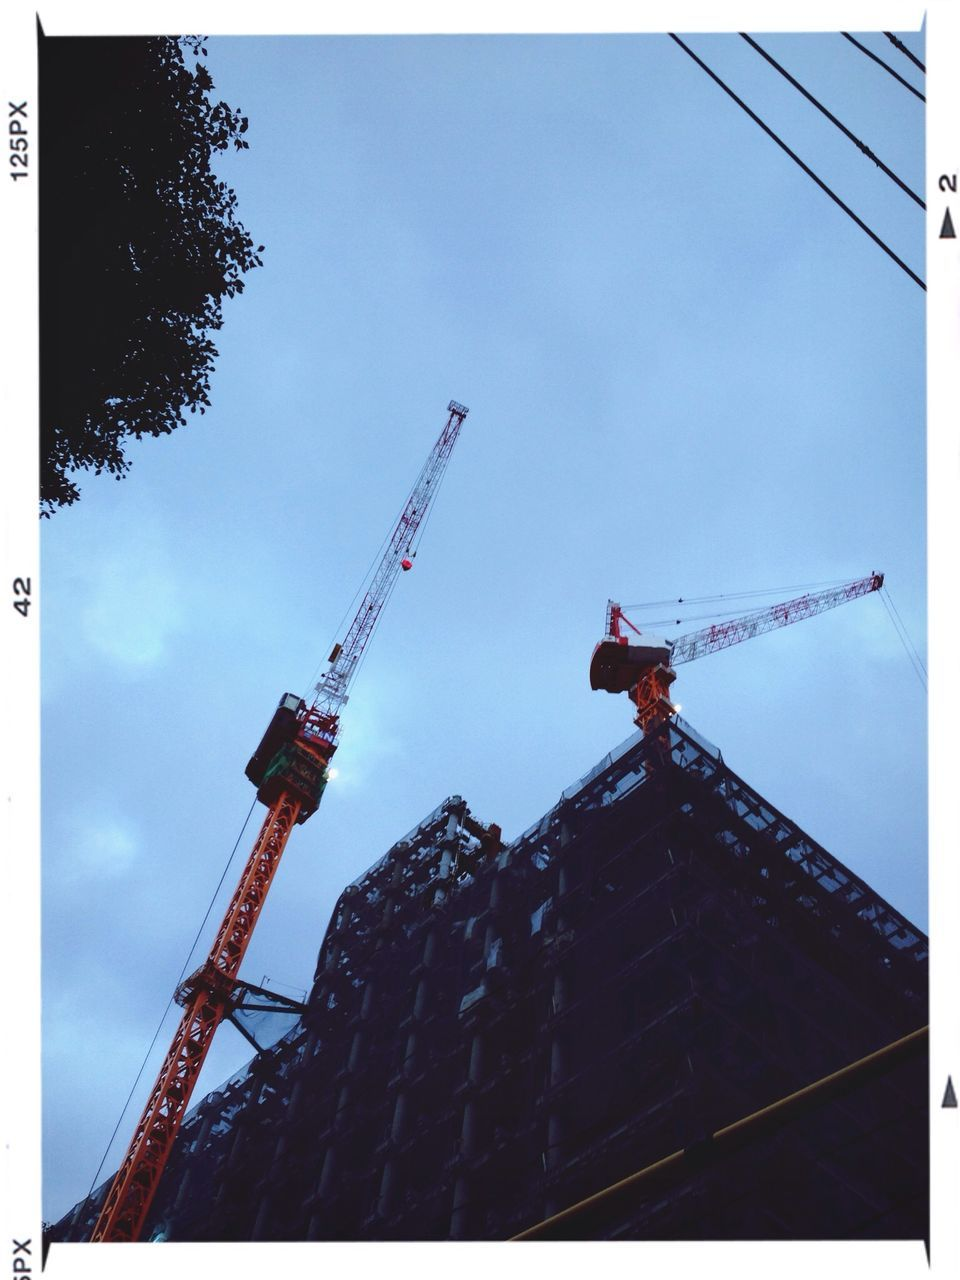 Low Angle View Of Construction